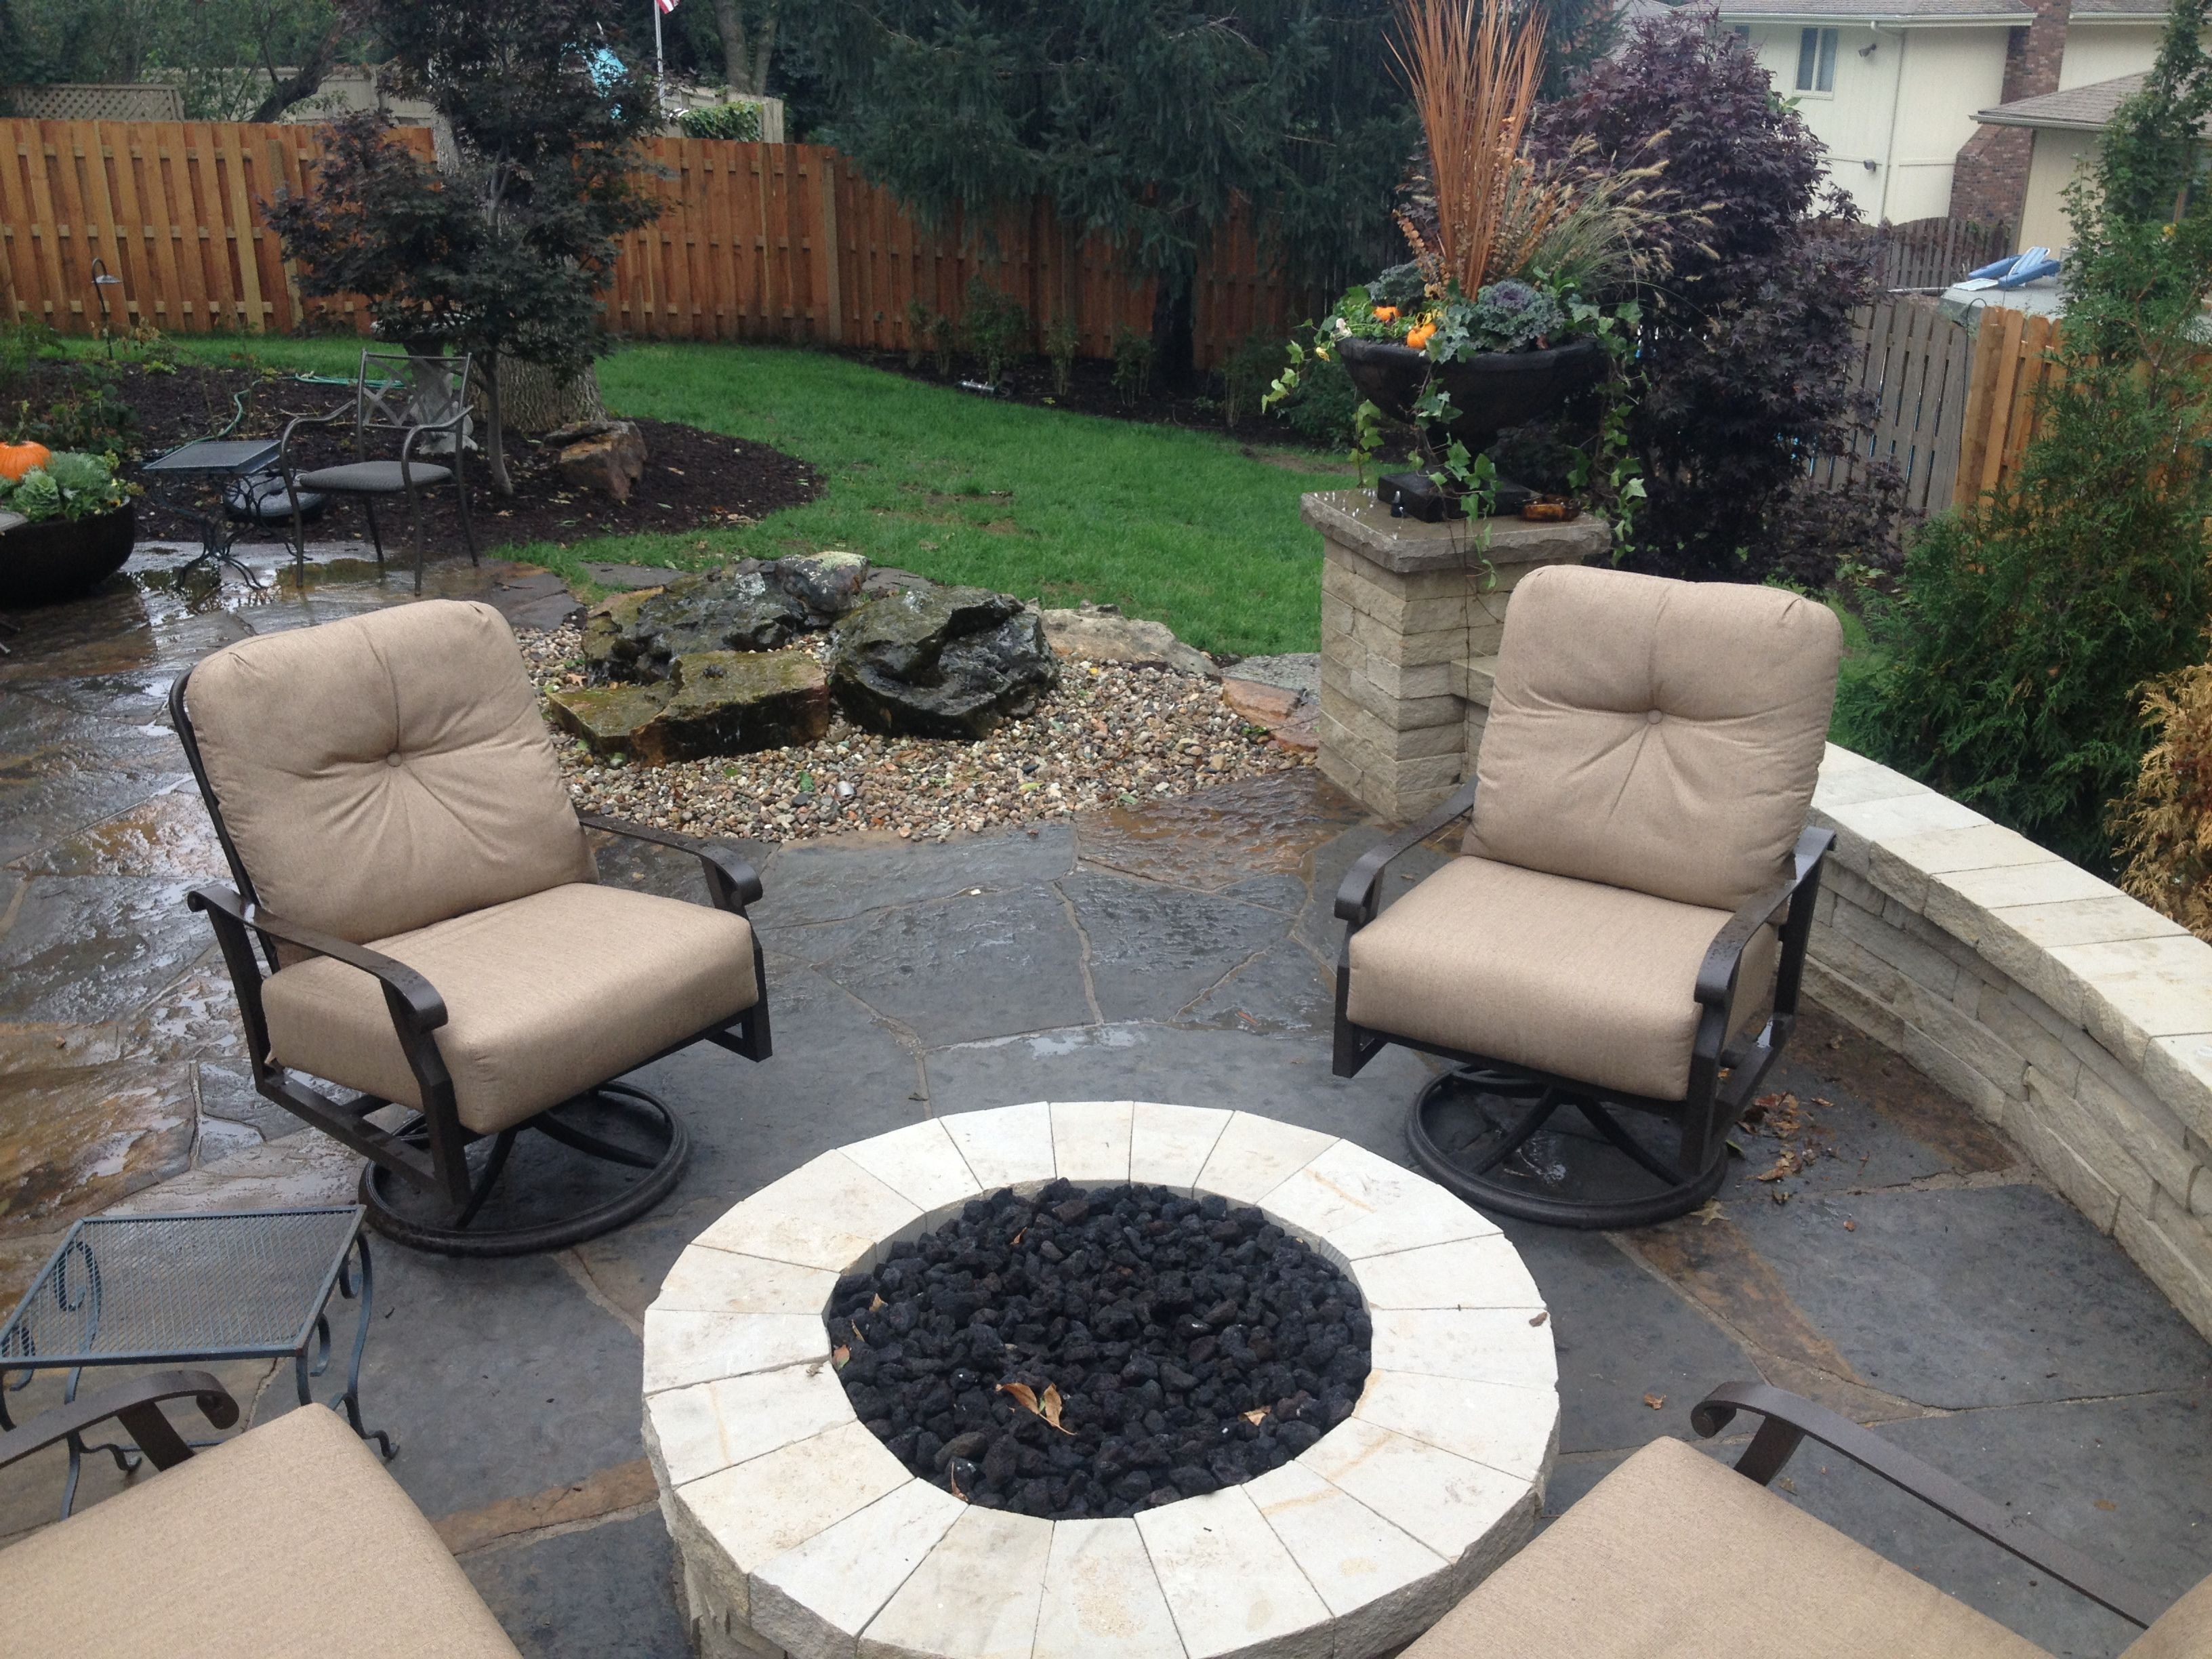 Blue Brown flagstone patio with natural stone seatwall and fire pit. Pillars for seasonal containers and a water feauture. By Greenlife Gardens